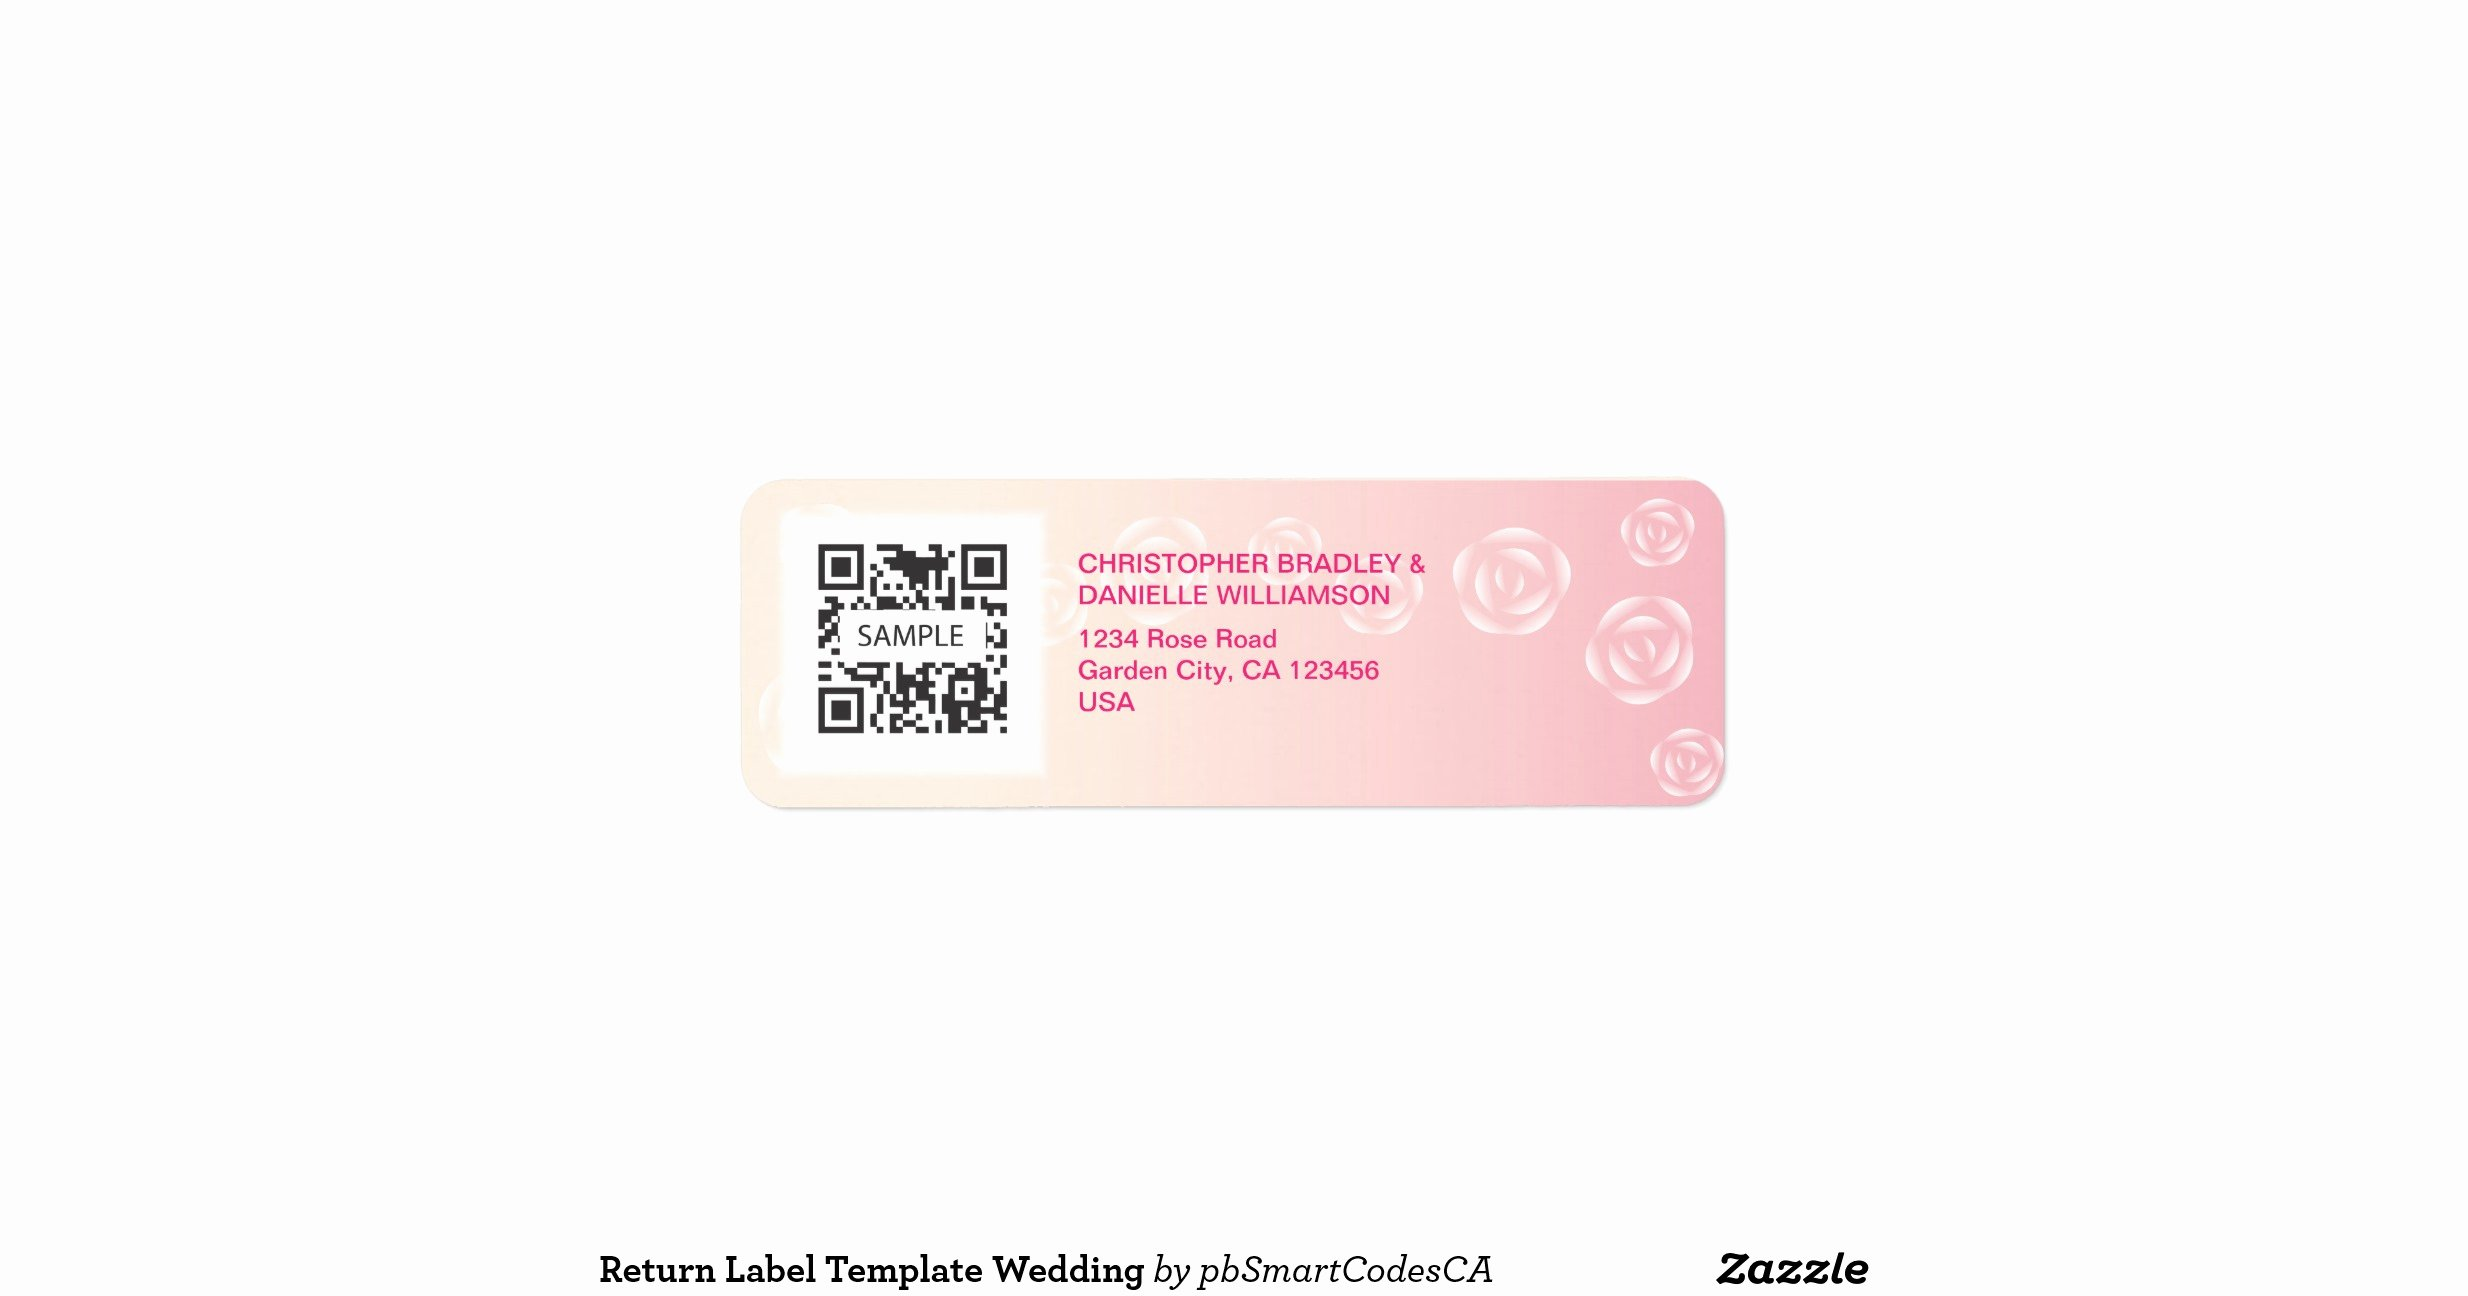 Wedding Return Address Label Templates Luxury Return Label Template Wedding Return Address Label